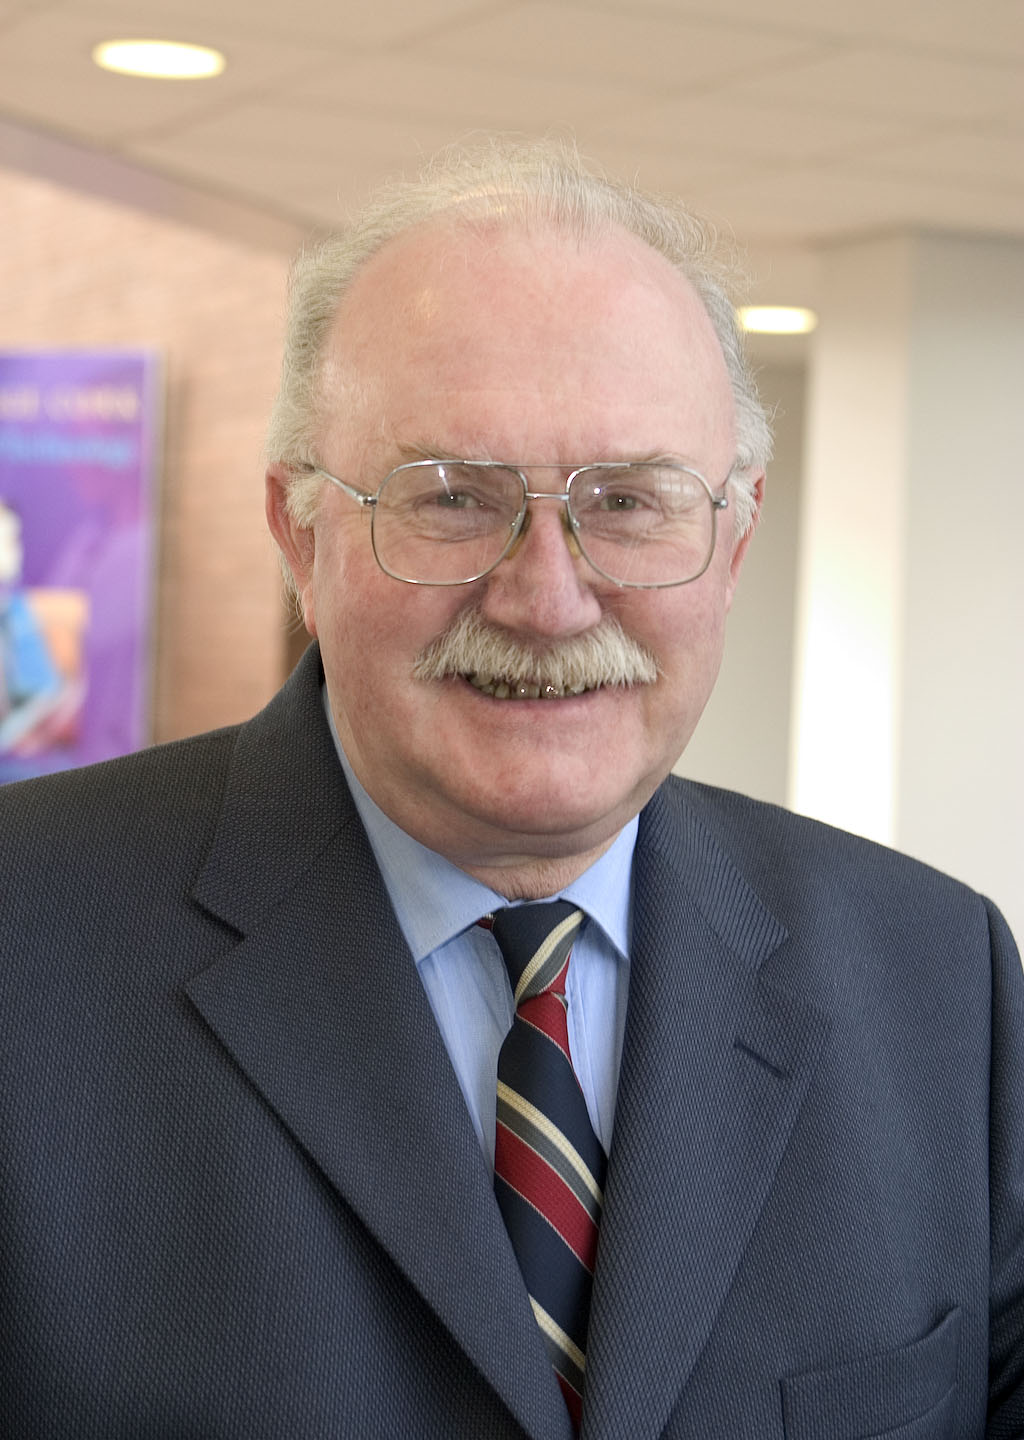 Faculty of Food Science and Technology University College Cork: A History by Prof. Patrick F. Fox